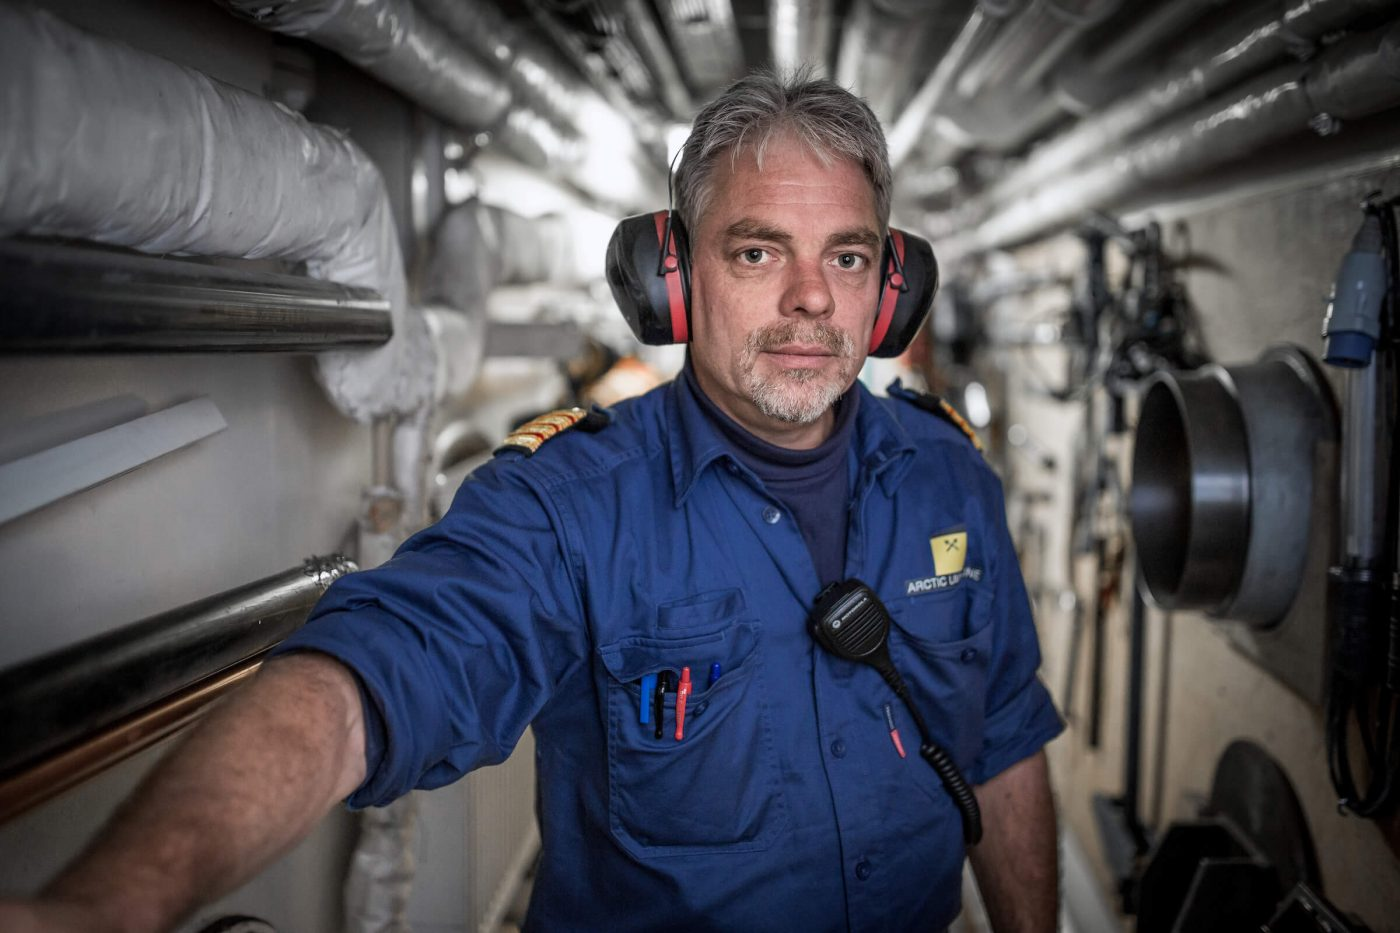 An officer from the Sarfaq Ittuk ferry in the engine room of the ship